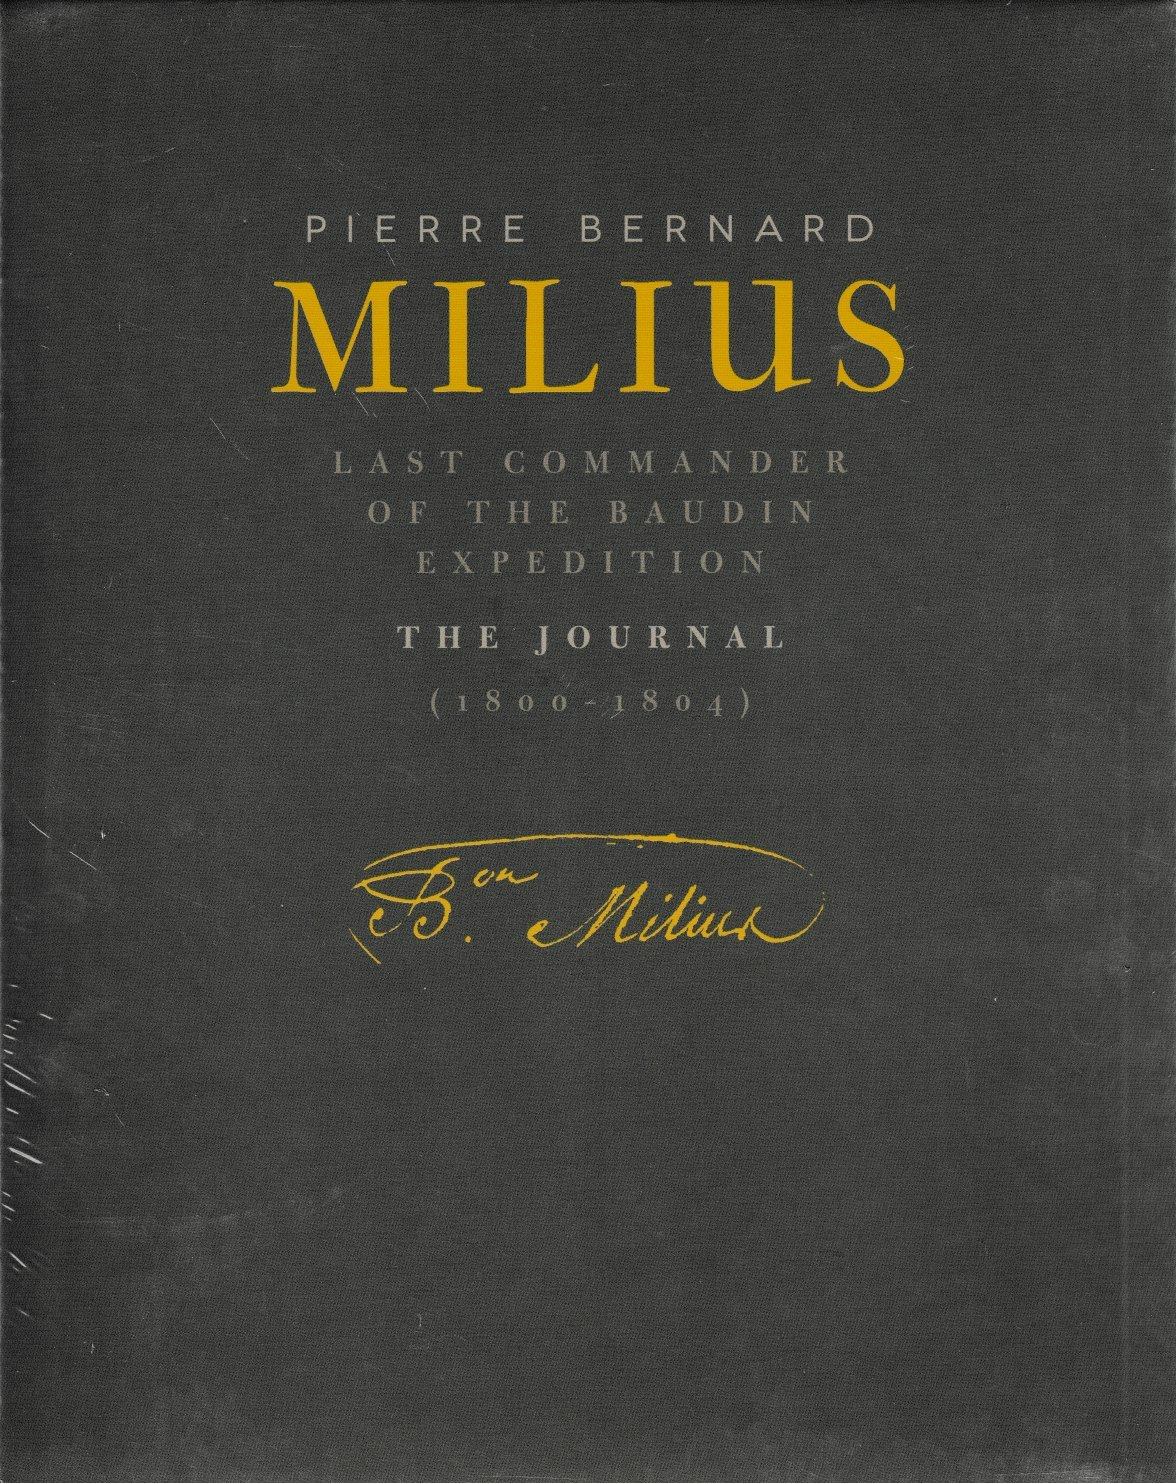 Pierre Bernard Milius - last Commander of the Baudin Expedition - The Journal 1800-1804